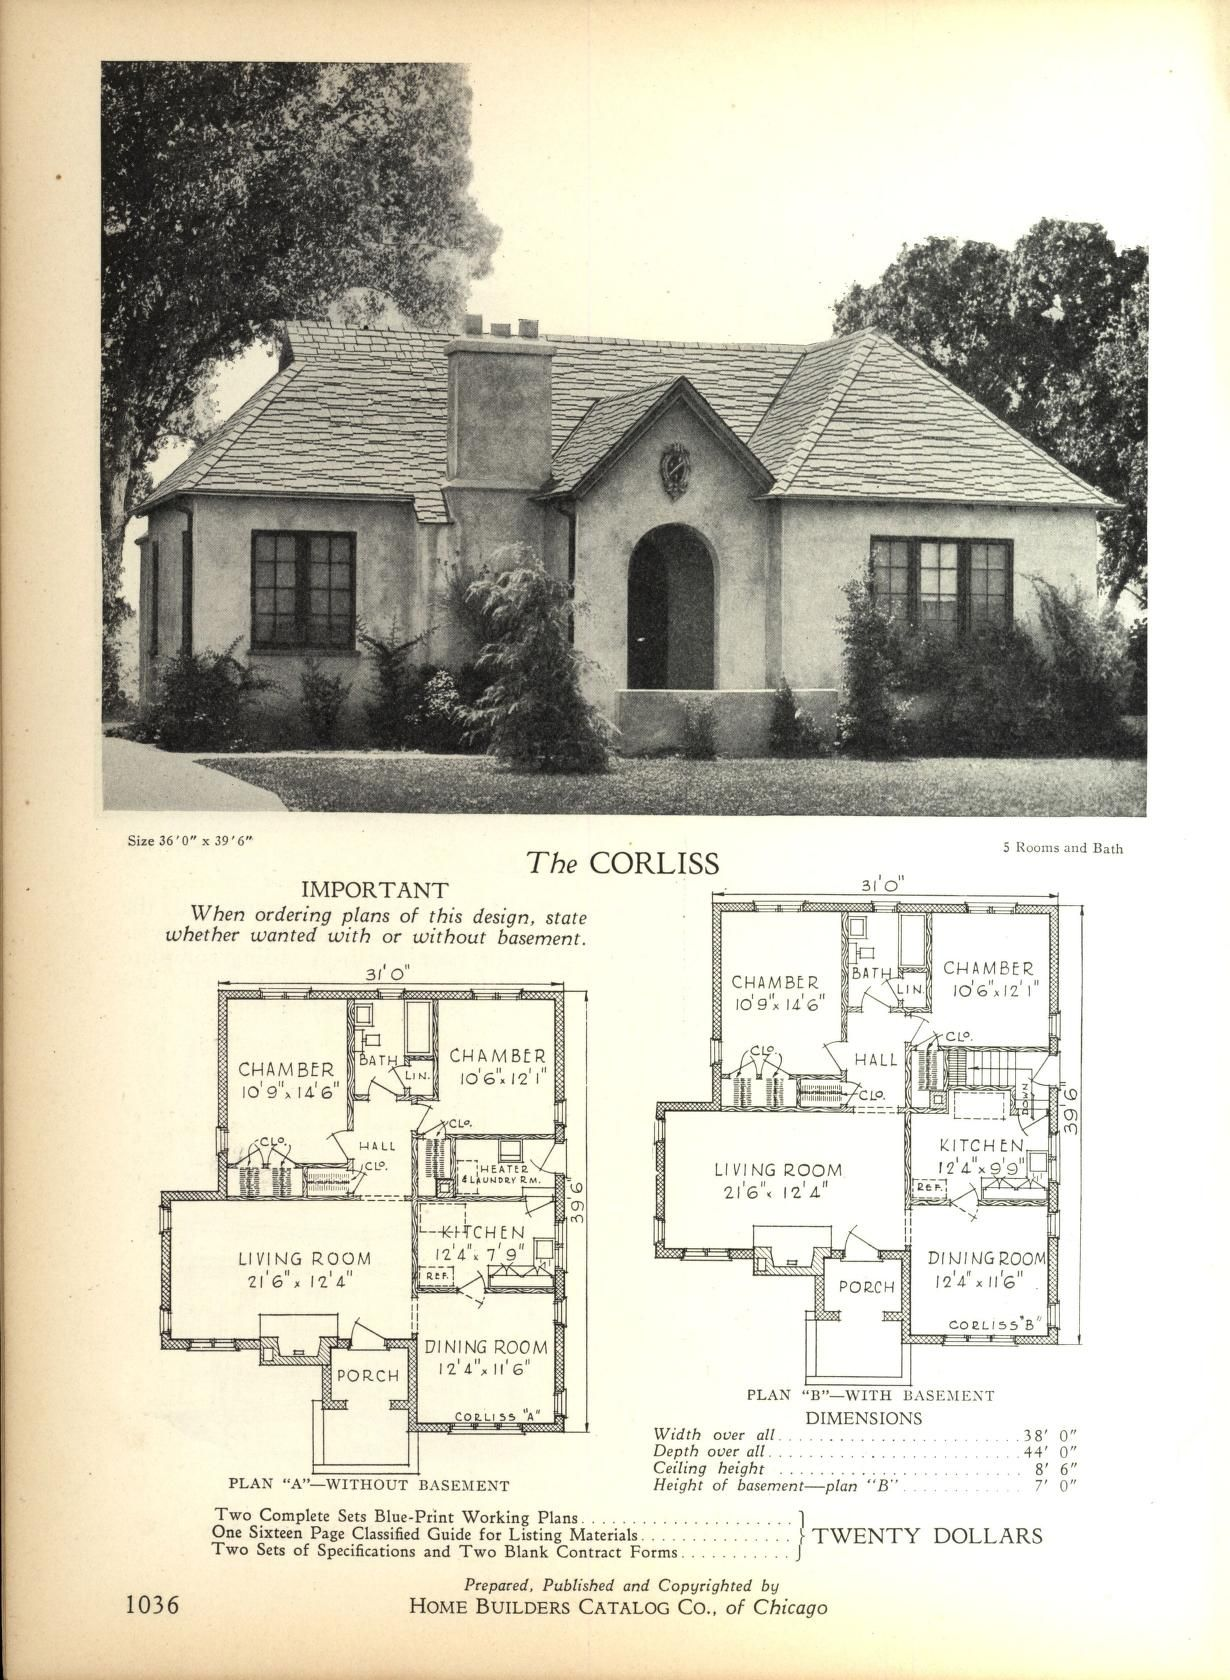 The CORLISS   Home Builders Catalog  plans of all types of small     The CORLISS   Home Builders Catalog  plans of all types of small homes by Home  Builders Catalog Co  Published 1928